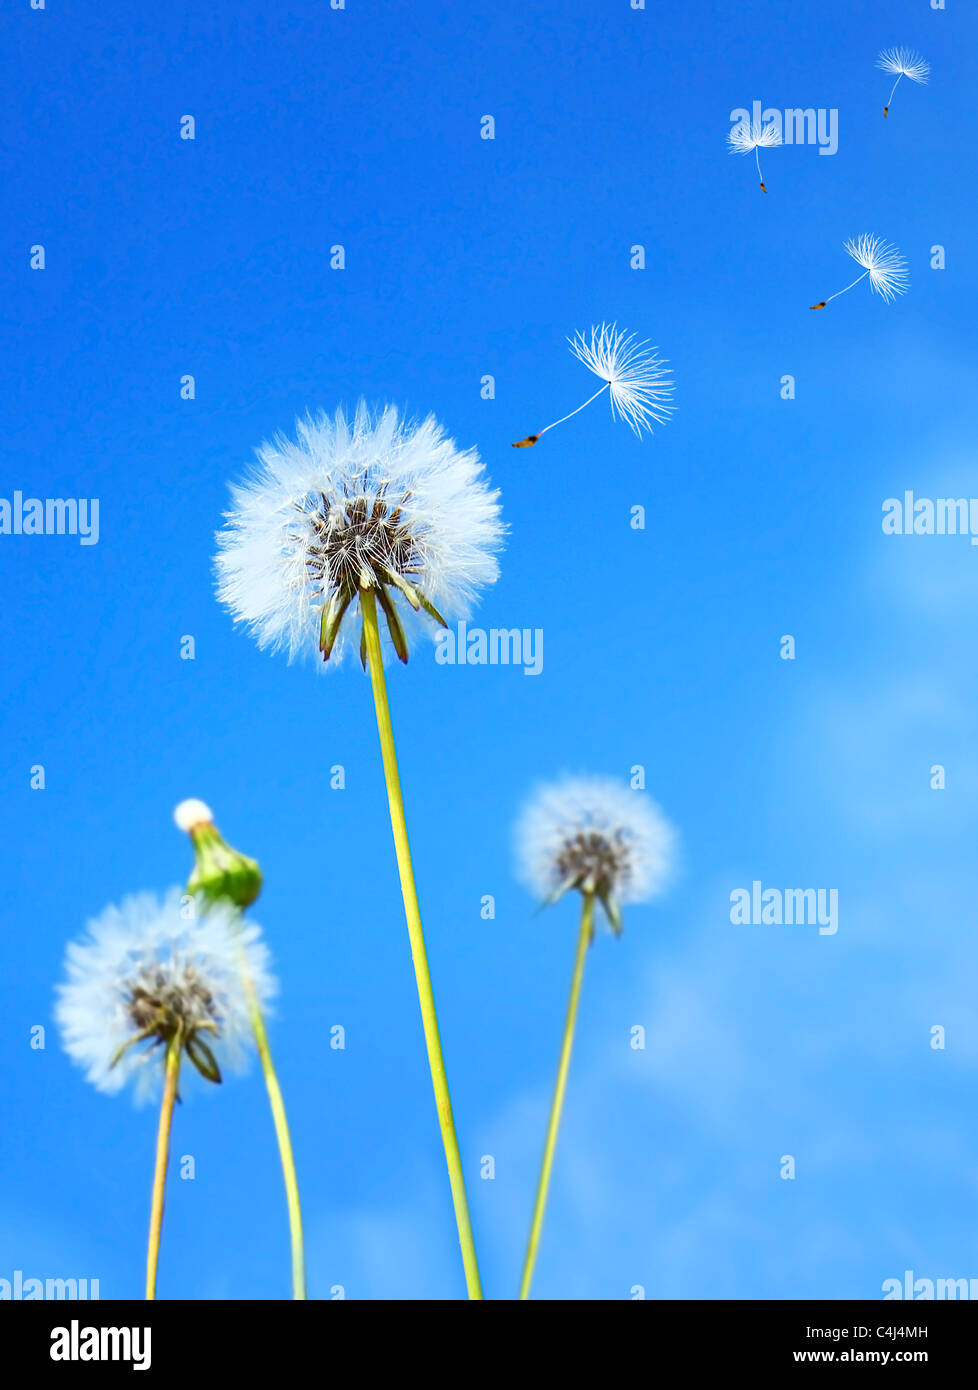 Dandelion flower field over blue sky - Stock Image